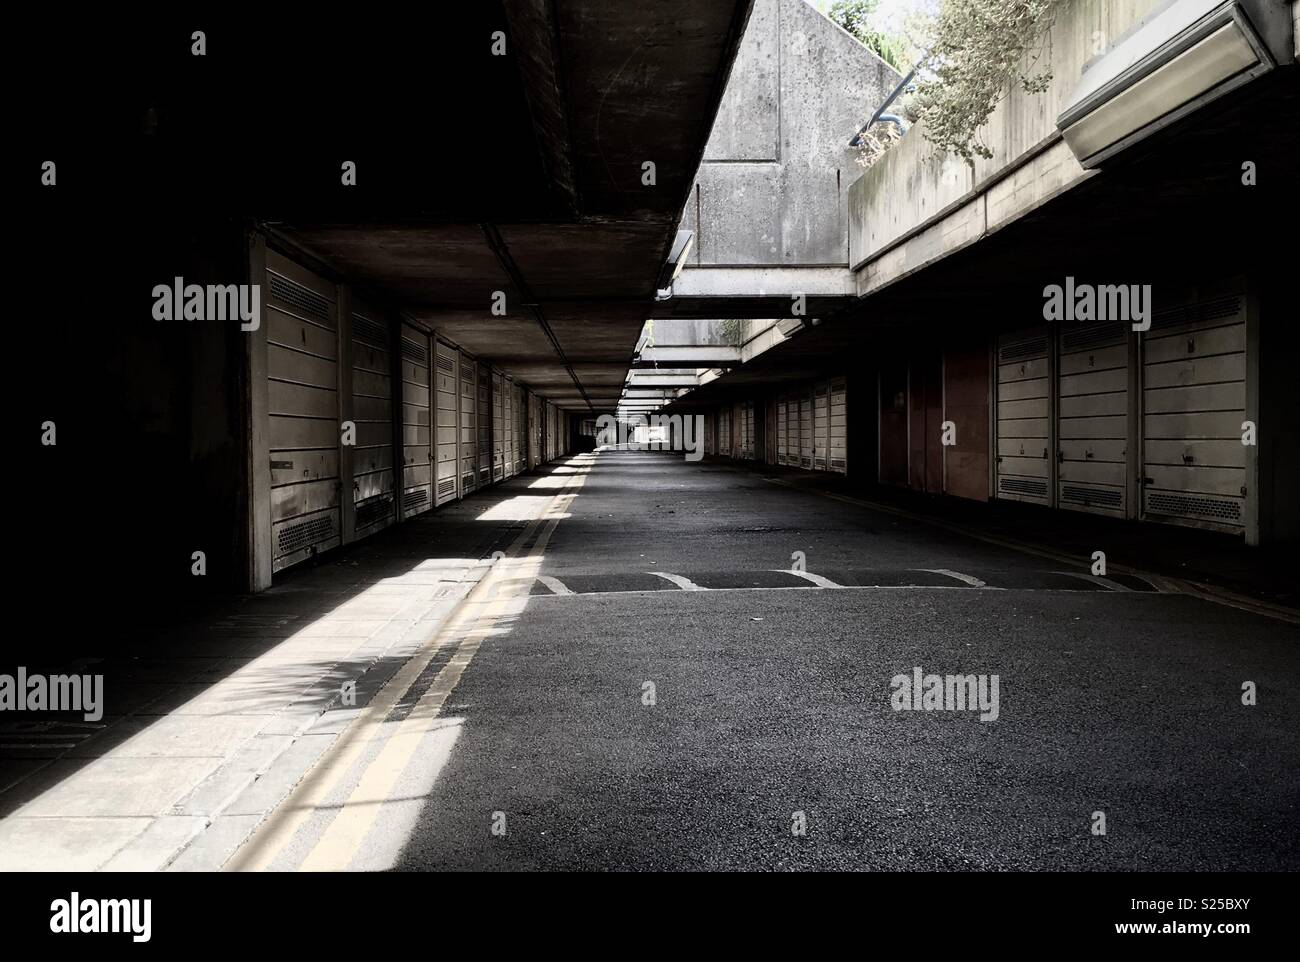 Under ground garage with light and shade - Stock Image